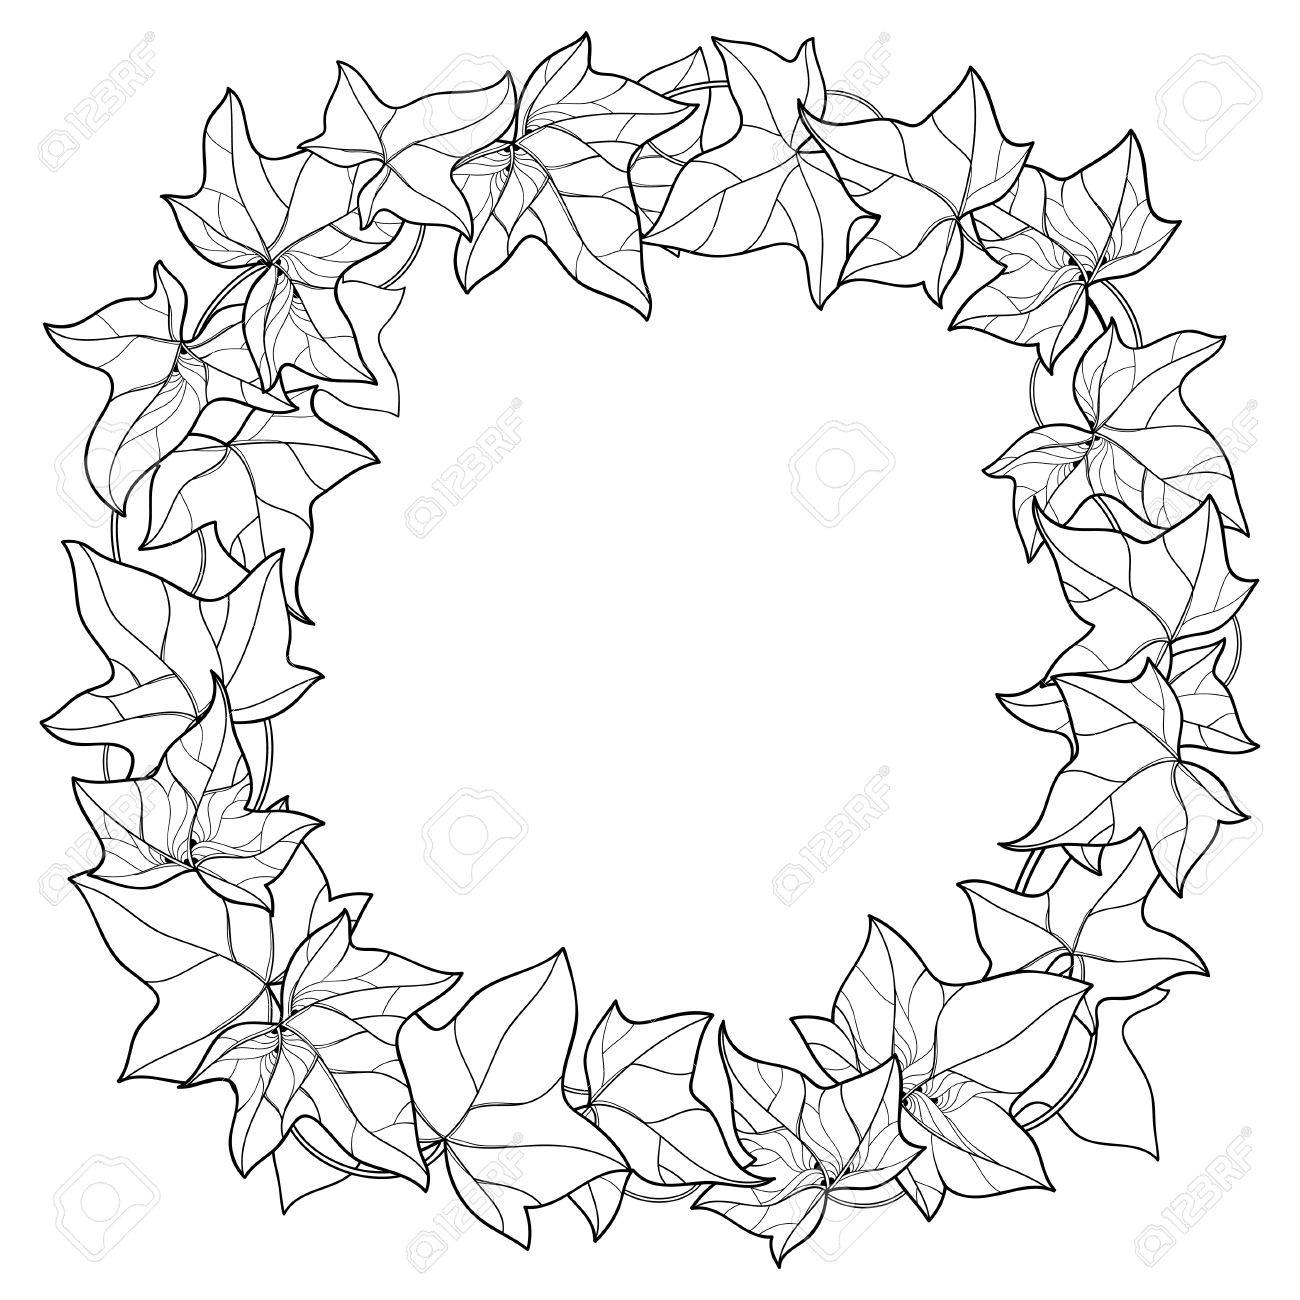 1300x1300 Round Wreath With Outline Ivy Or Hedera Foliage. Ornate Leaf